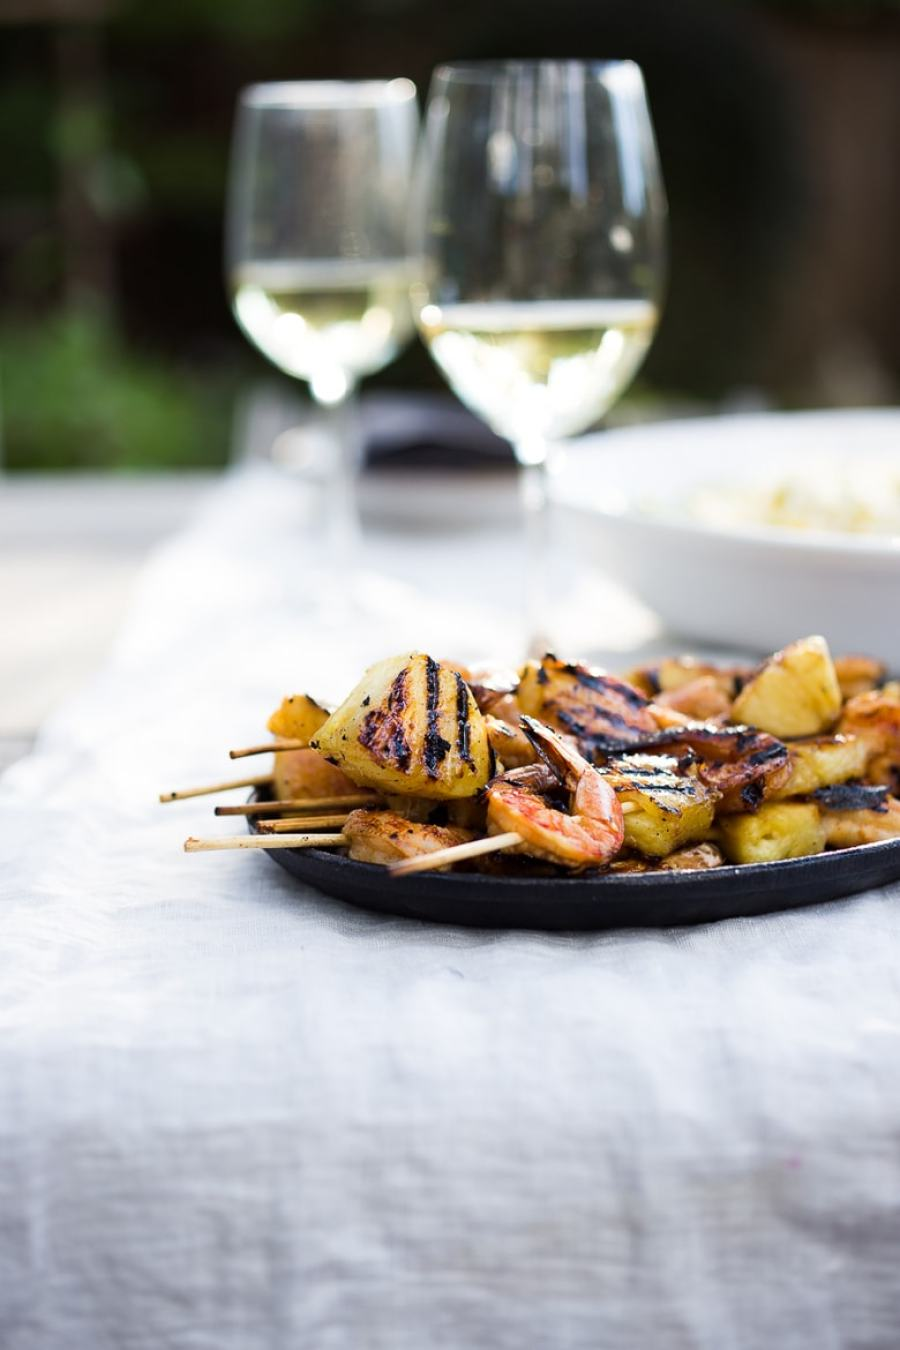 Grilled Chipotle Shrimp and Pineapple Skewers-Juicy, sweet and tangy pineapple snuggledup with subtlyspicy smokey shrimp, so good!!! Servedwith Jicama Mango Slaw!+ 15 Summer Grilling Recipes! | www.feastingathome.com